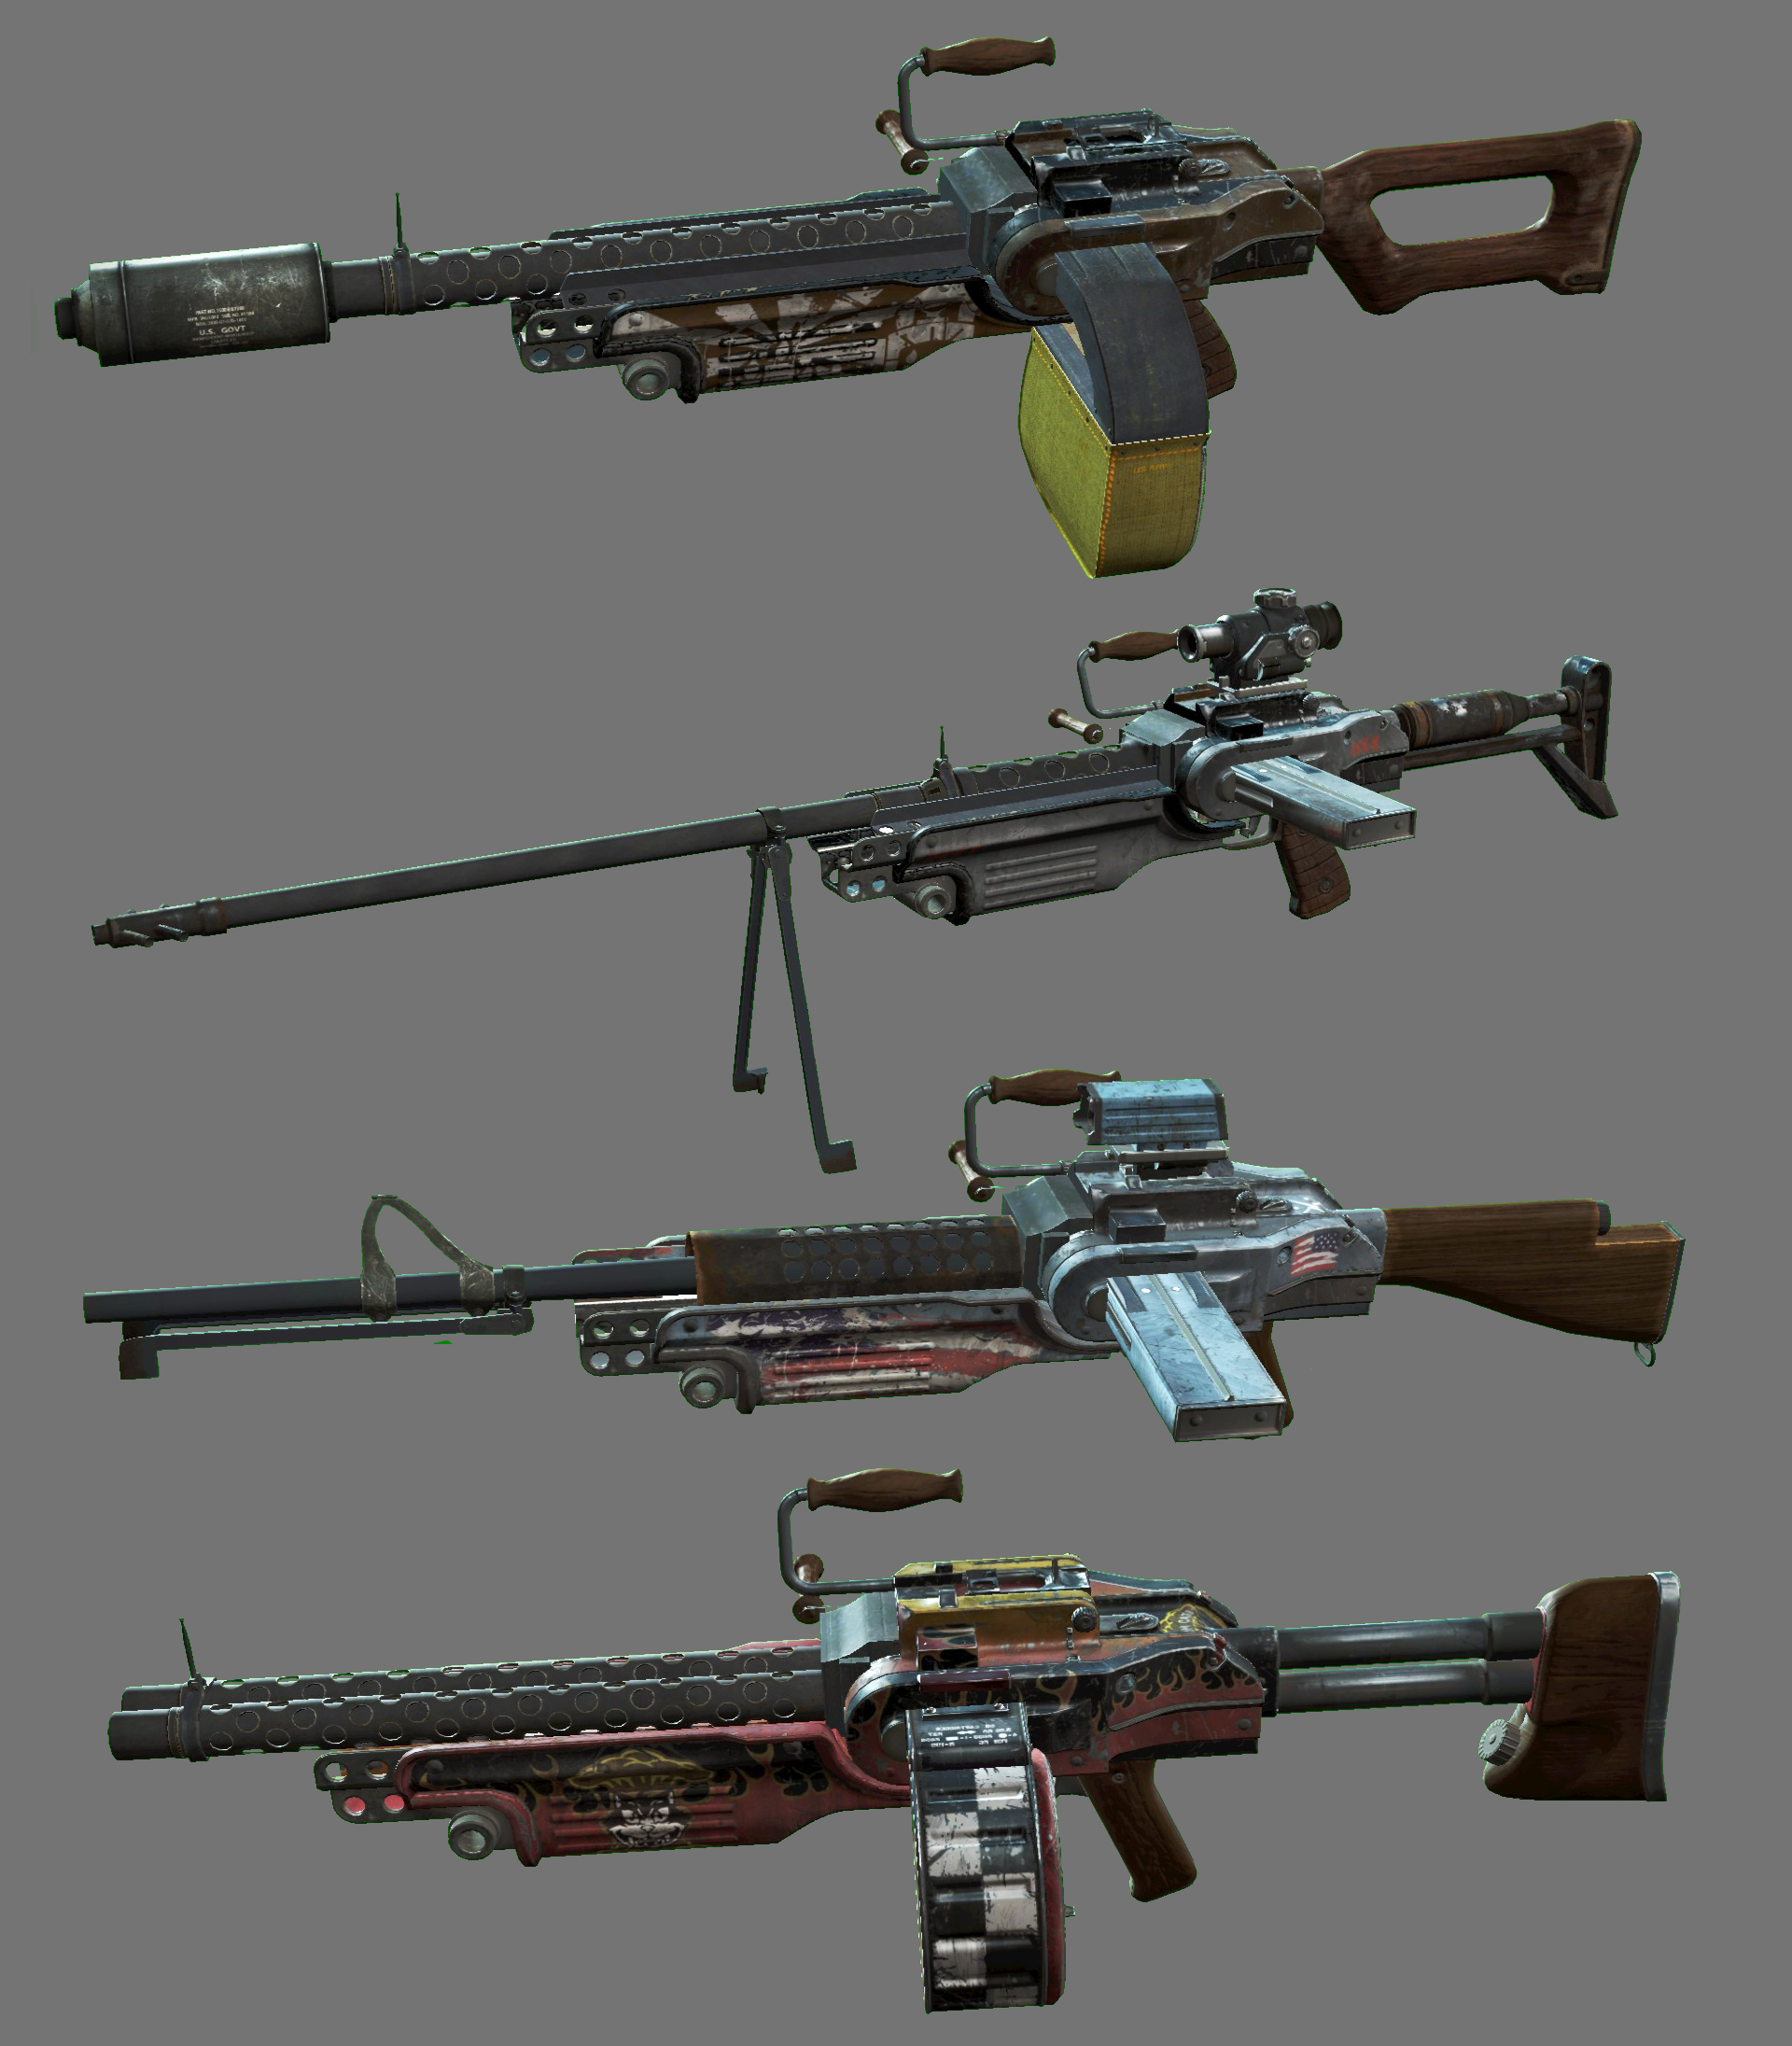 'Assault Rifle' Parts Coming Soon